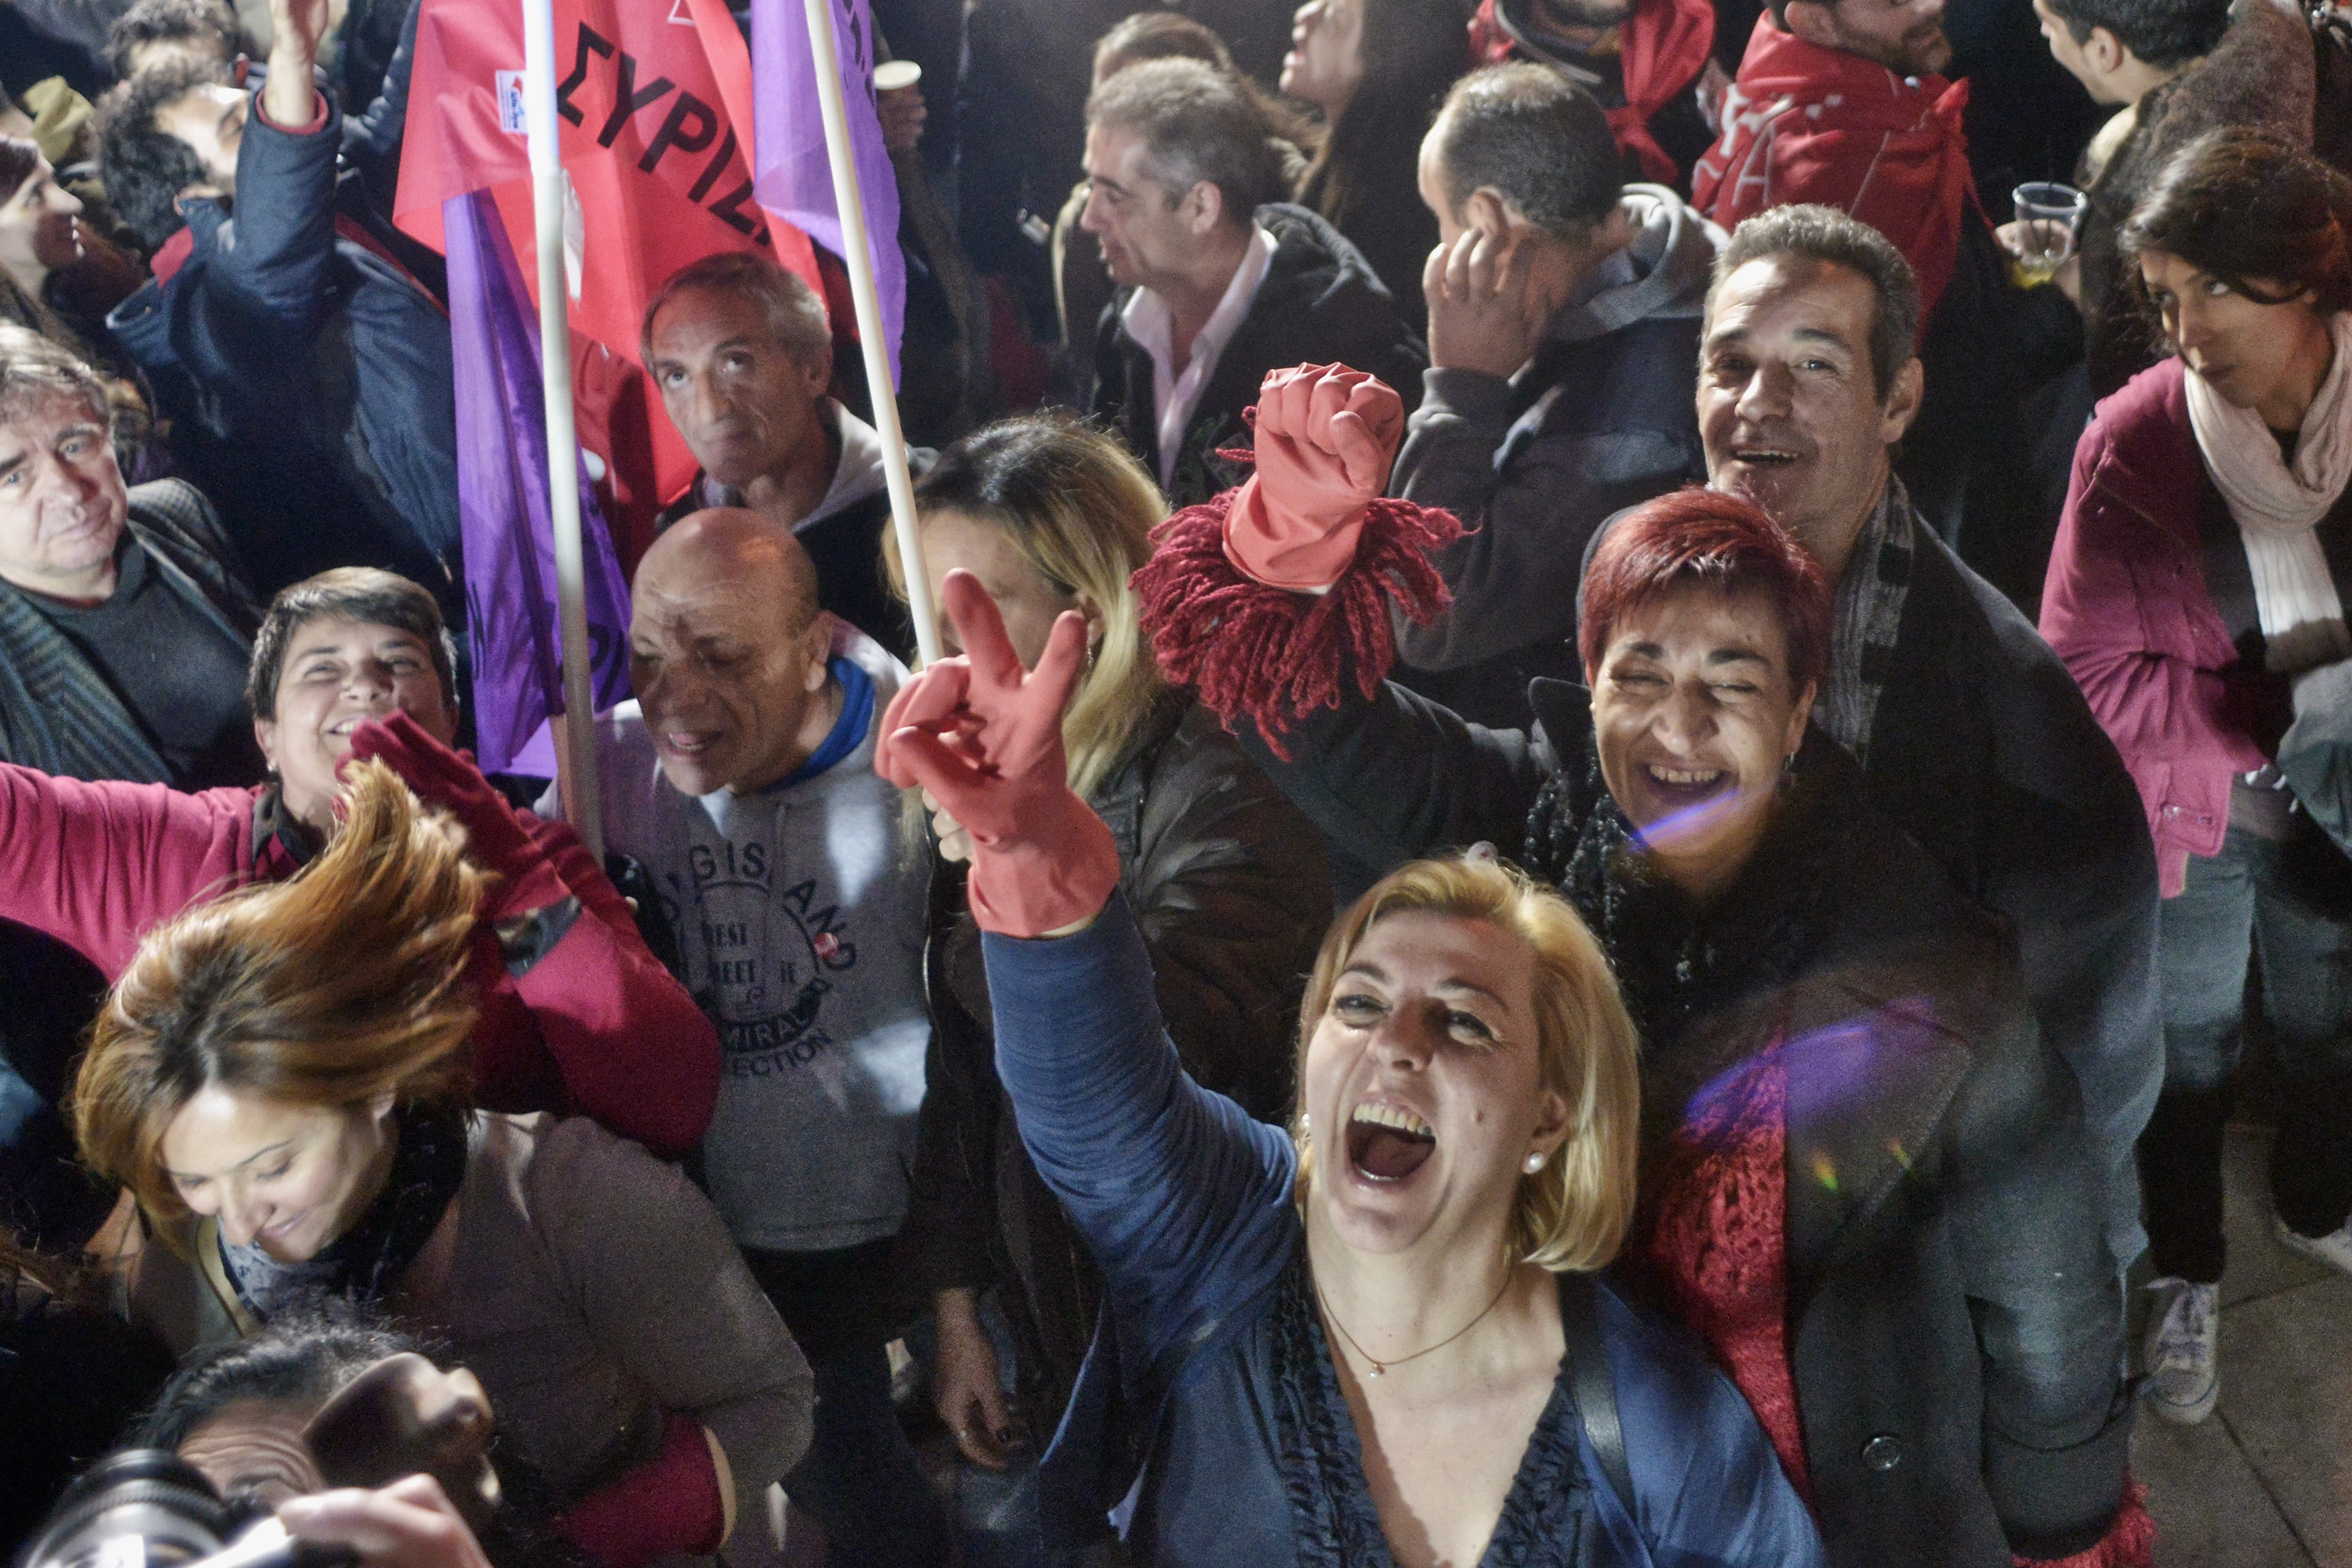 Supporters of Alexis Tsipras, leader of Syriza left-wing party, cheer during a rally outside Athens University Headquarters on Sunday in Greece.